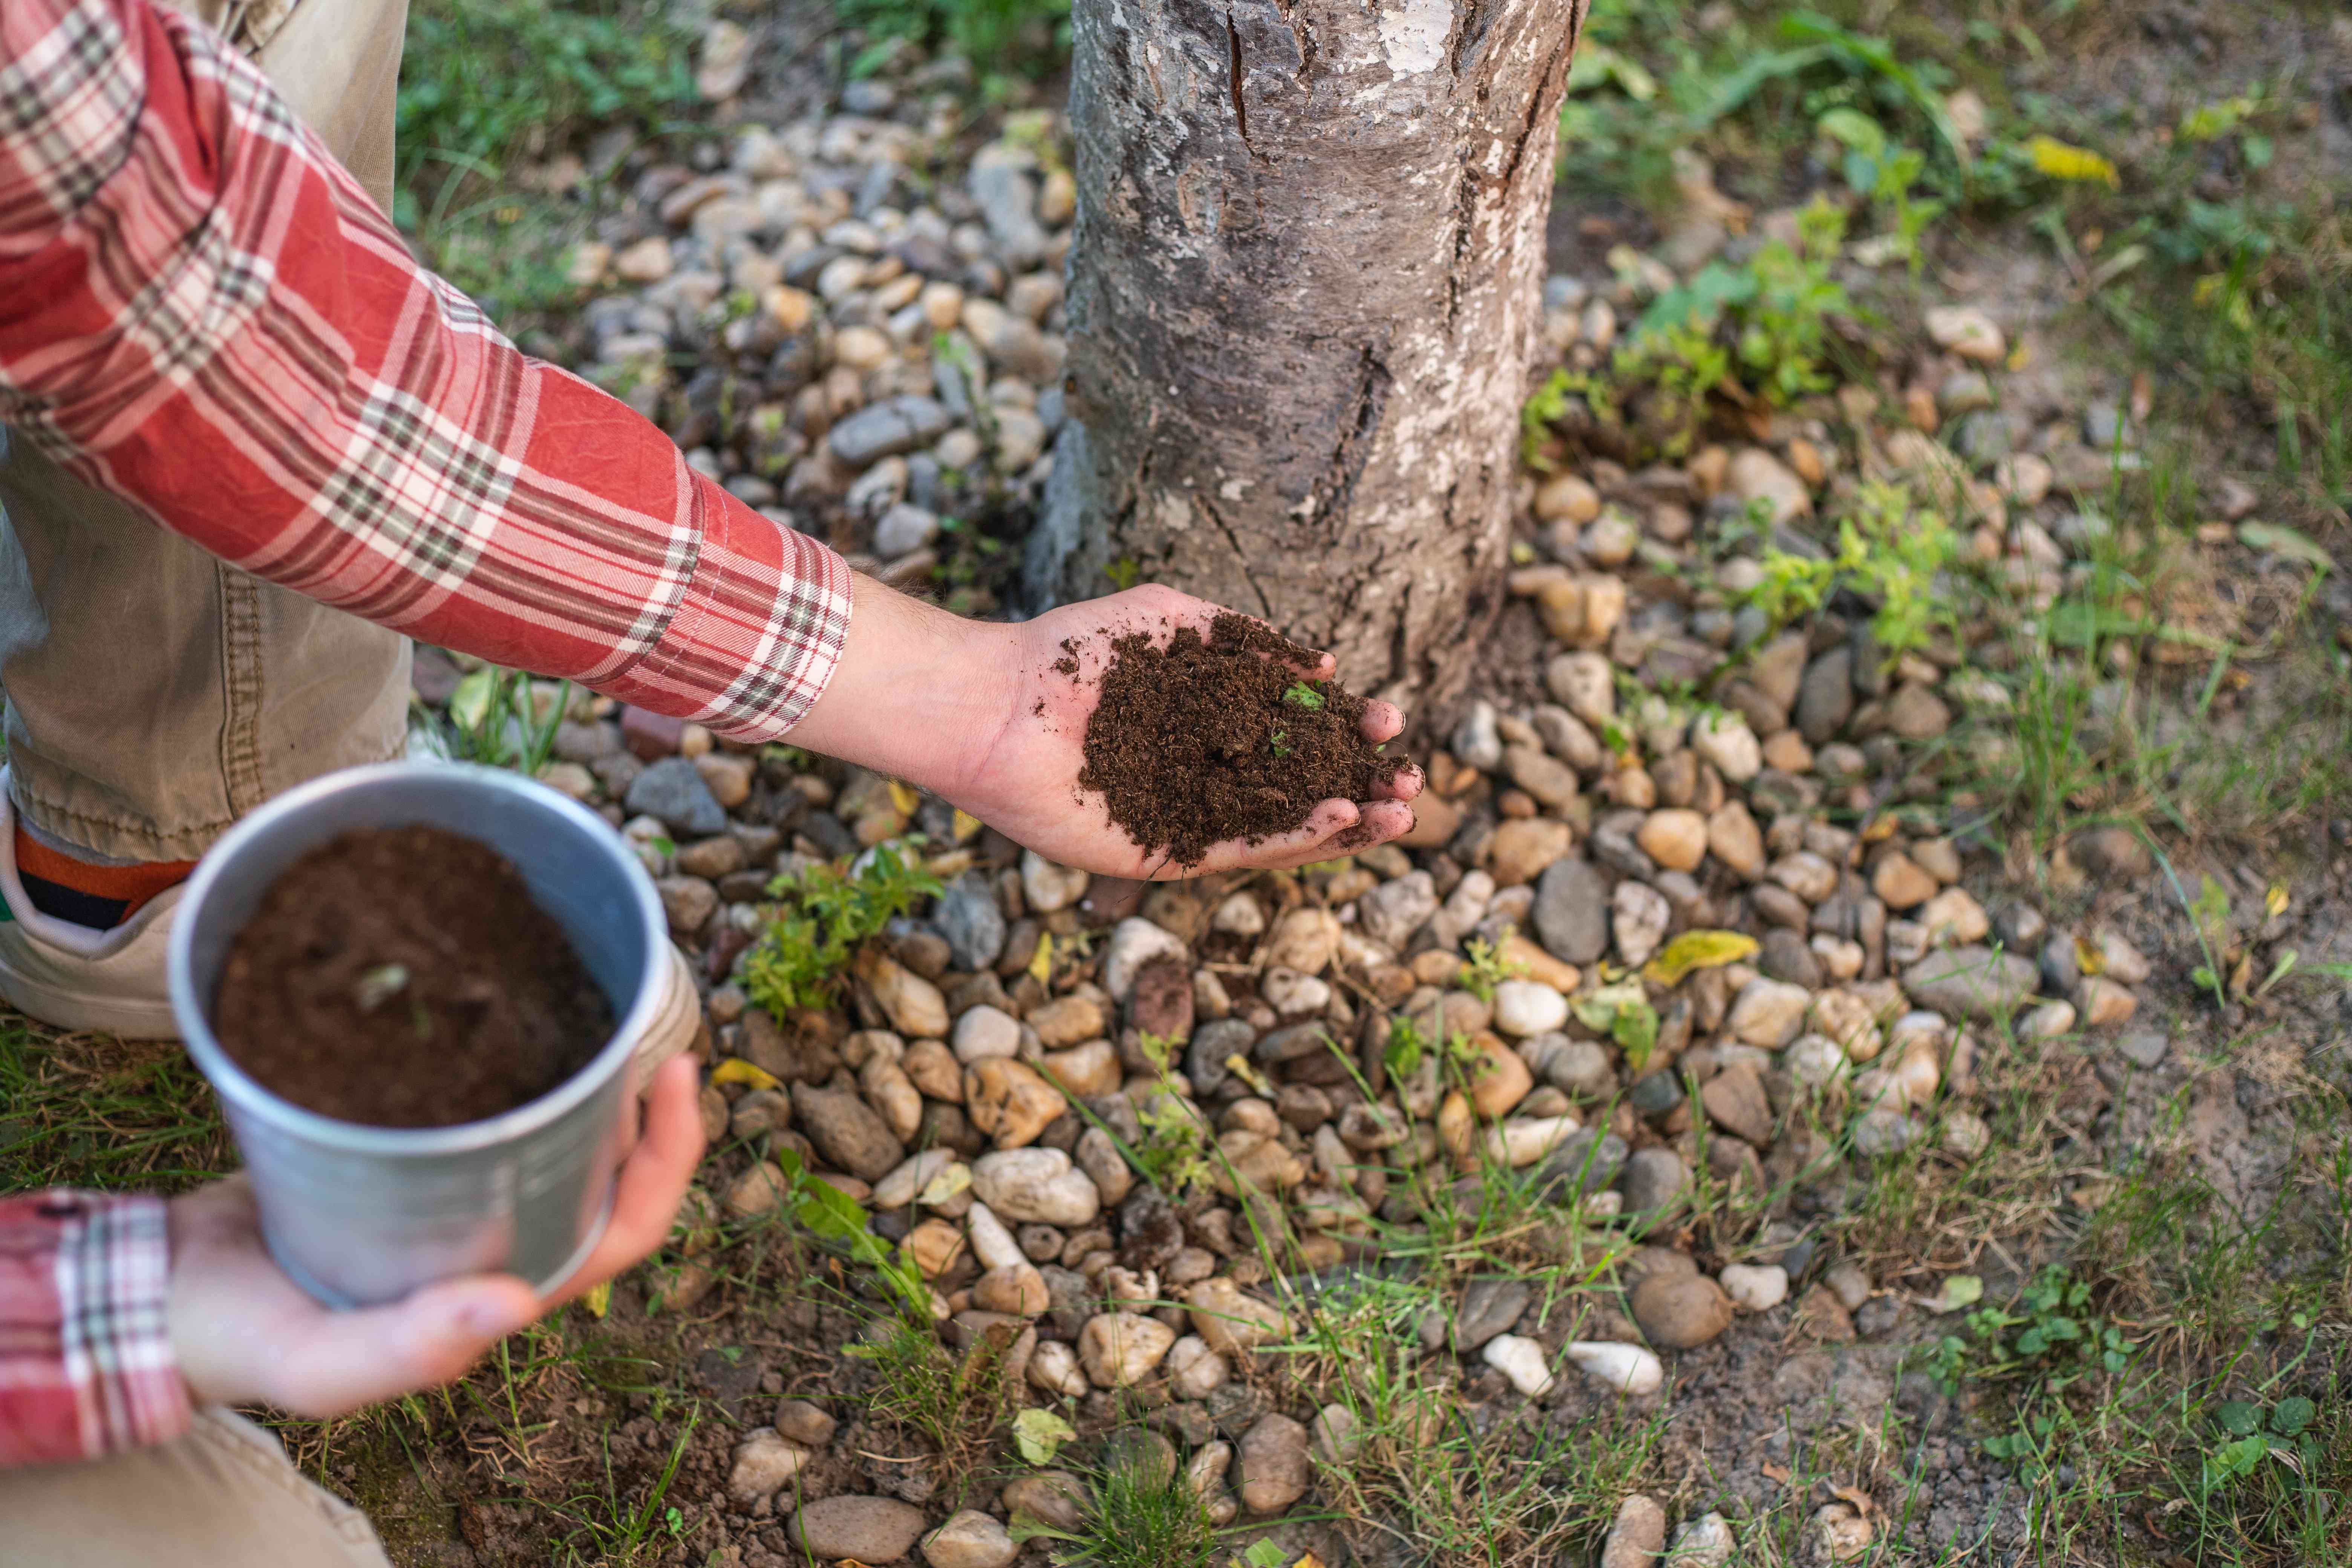 person in plaid shirt crouches down near tree holding compost dirt in bare hands